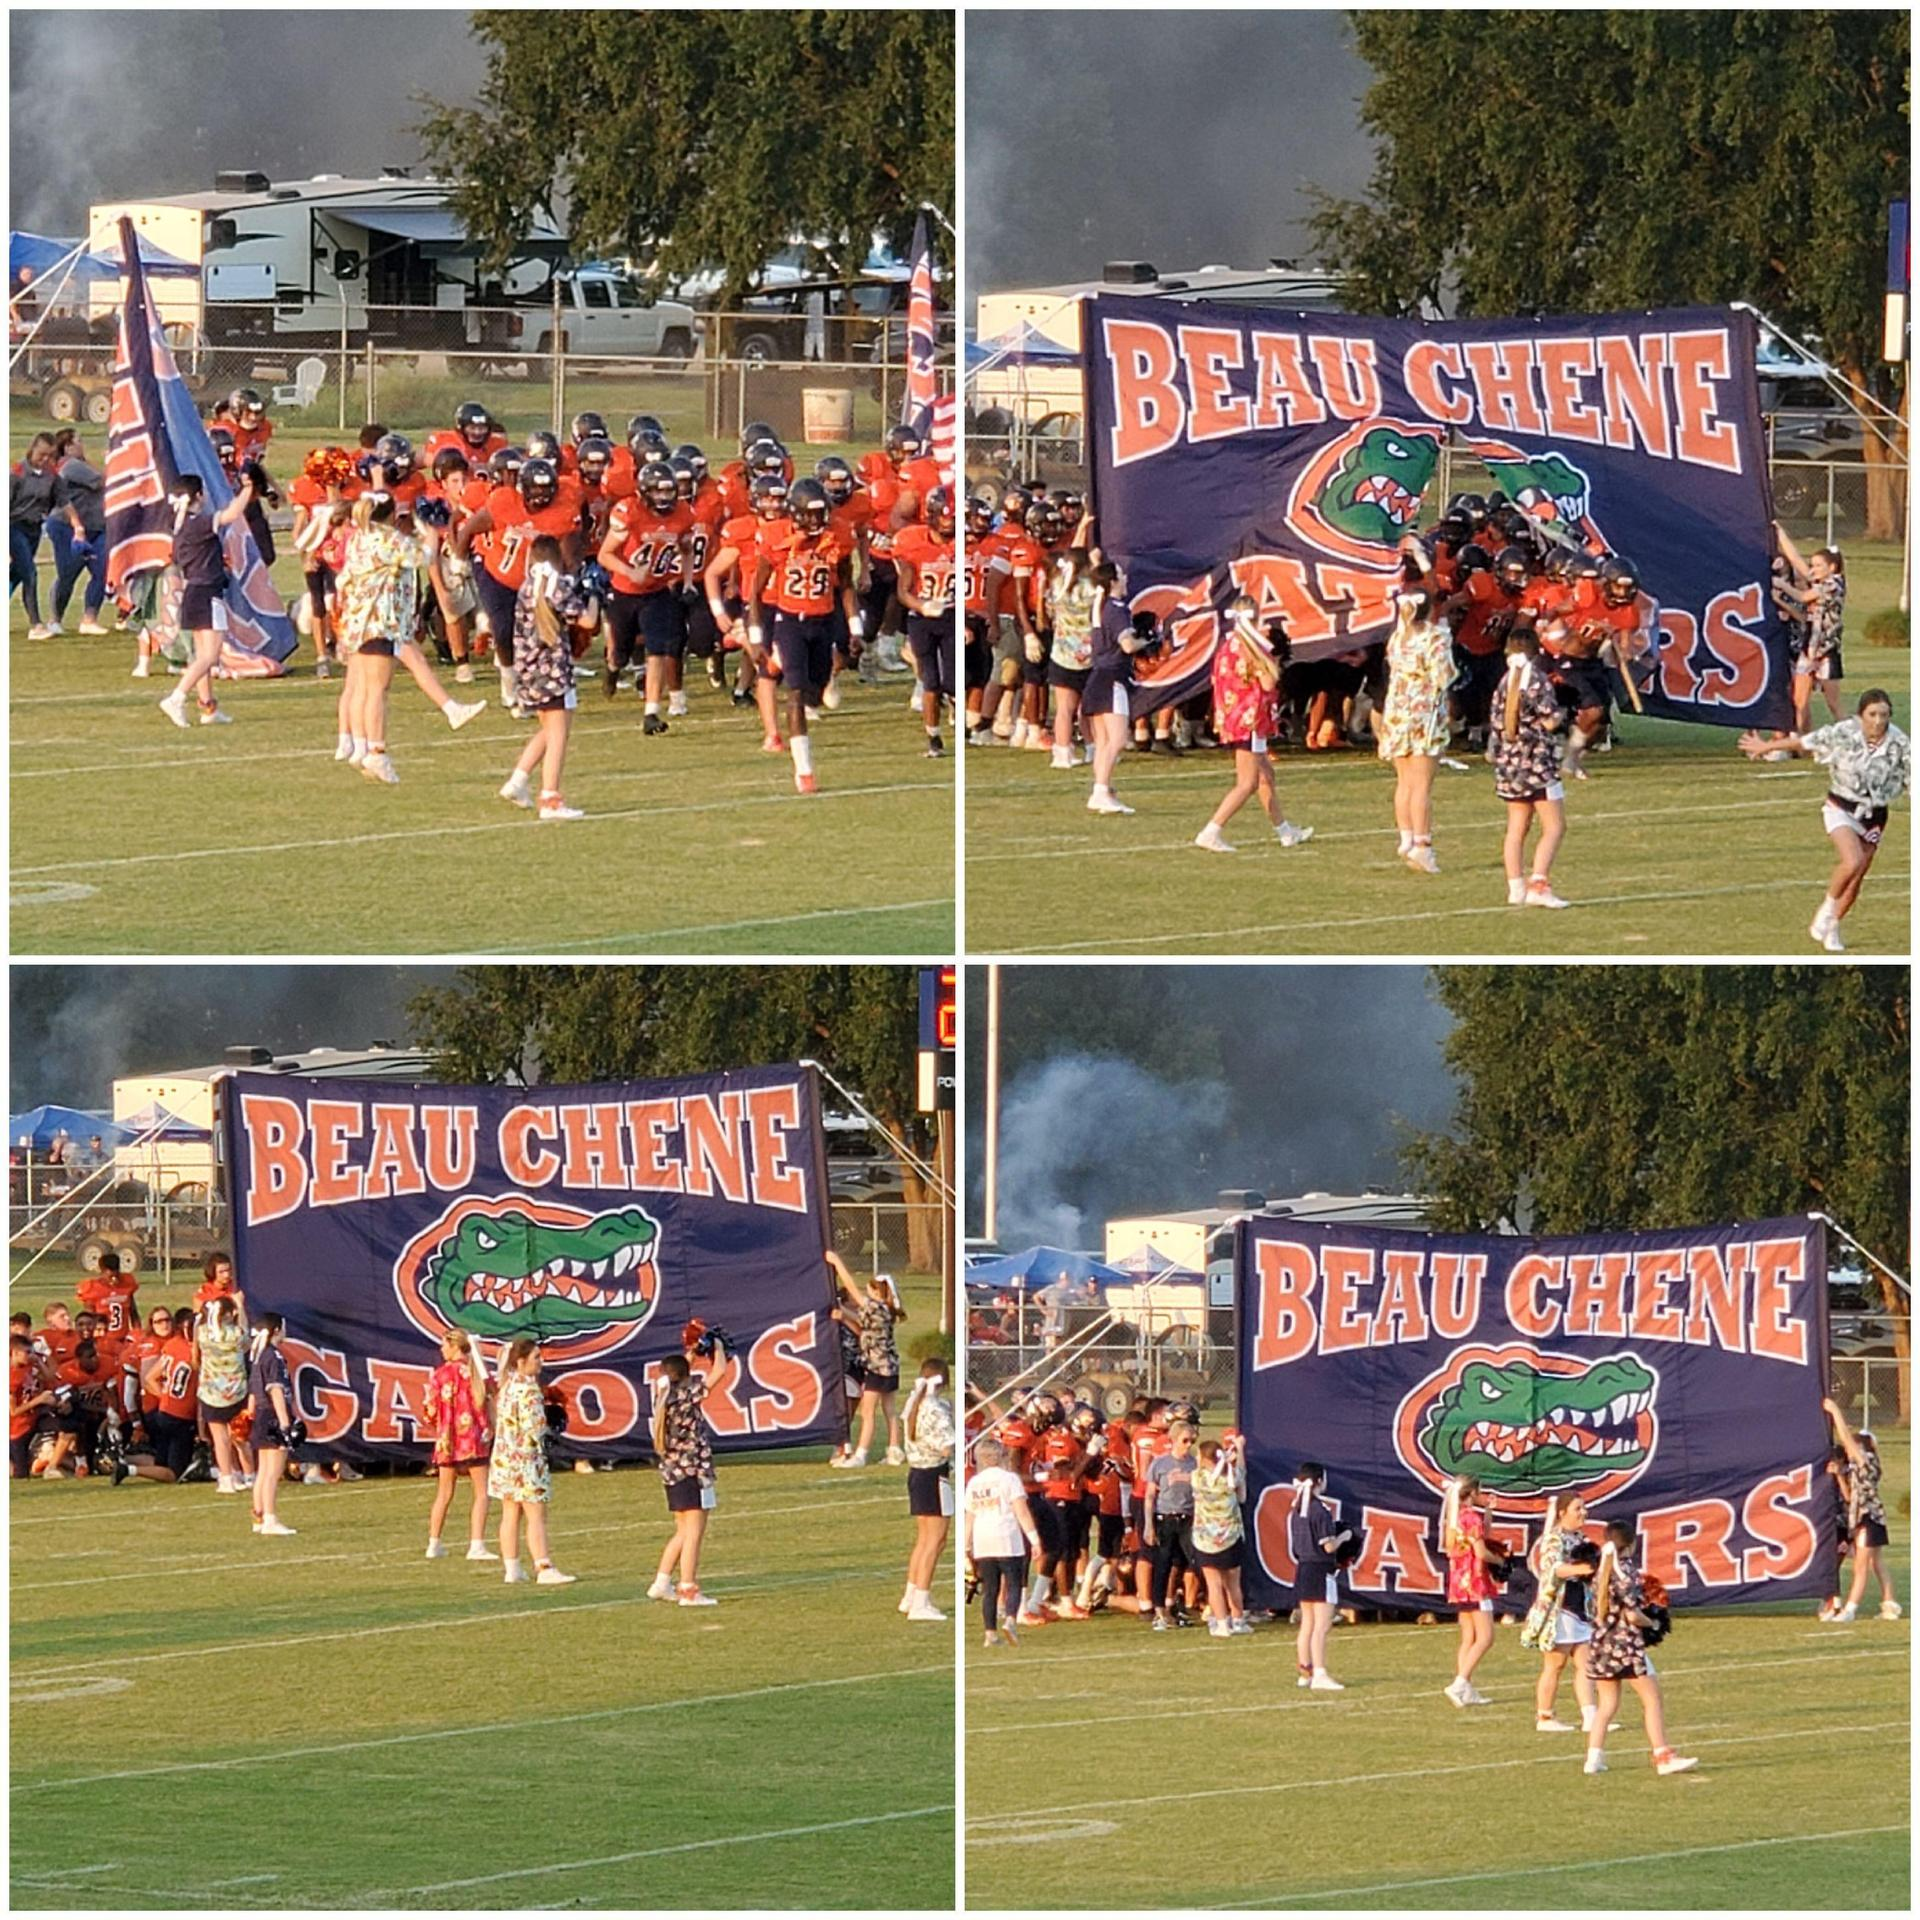 Cheerleaders hold banner for the Football Players